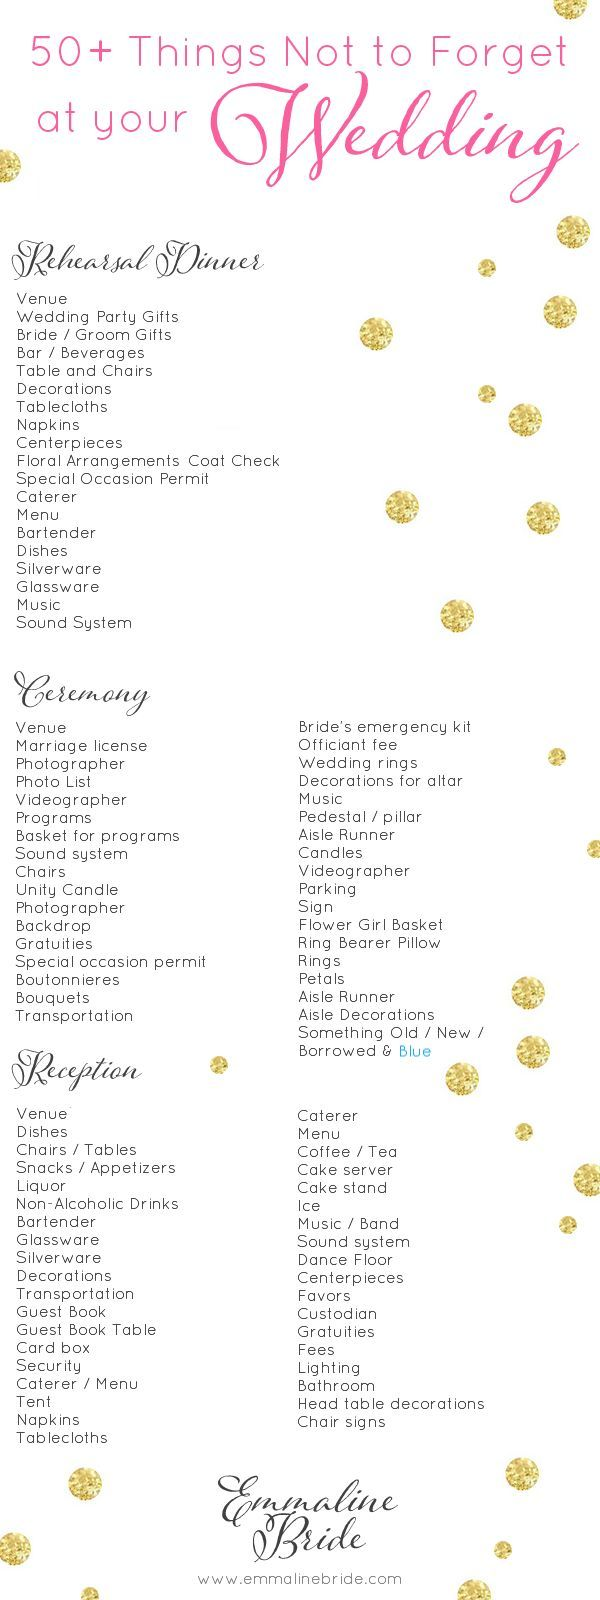 50+ Things Not to Forget at Your Wedding (CHECKLIST) | Emmaline Bride® | Bloglovin'